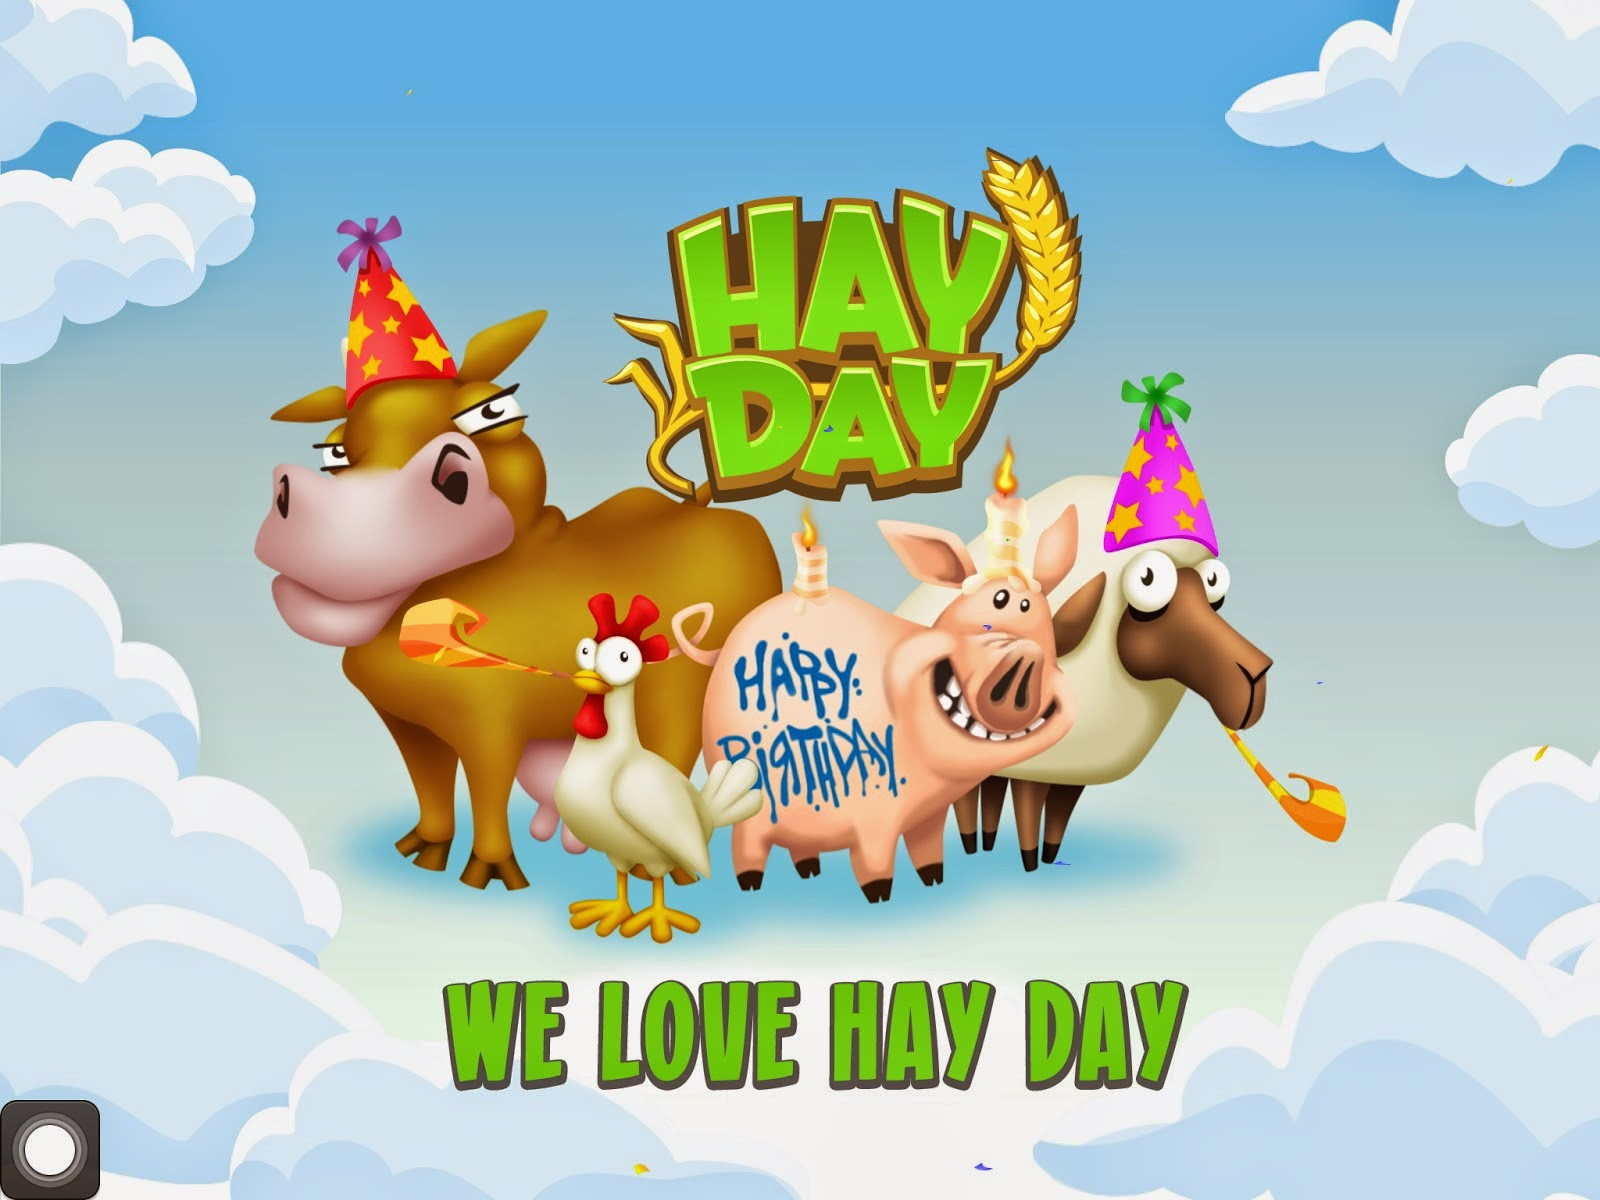 hay day cheats and hacks: hay day game online walkthrough